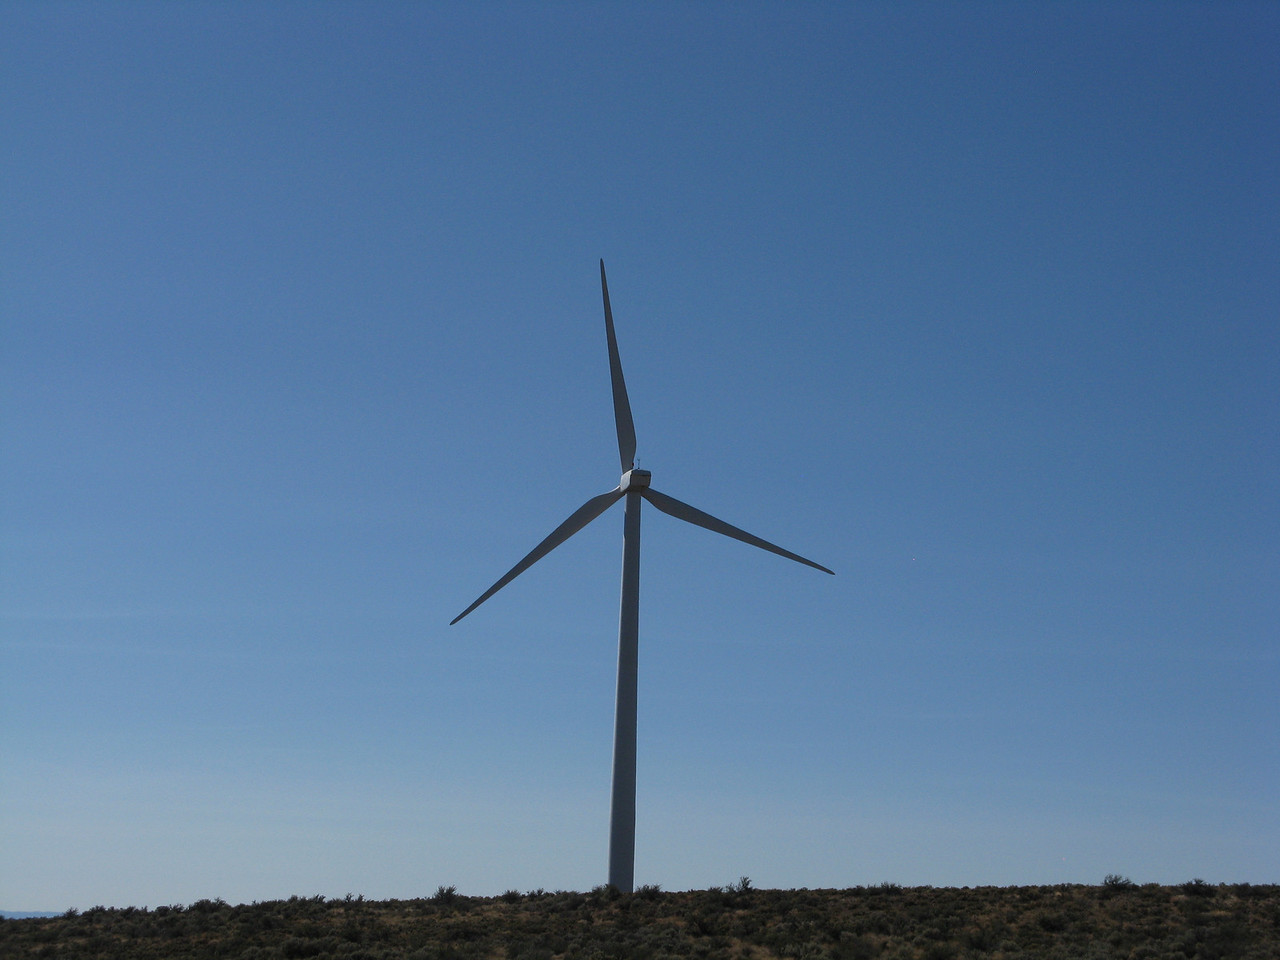 The wind mills were spinning fast in the west wind on this mid-August day..